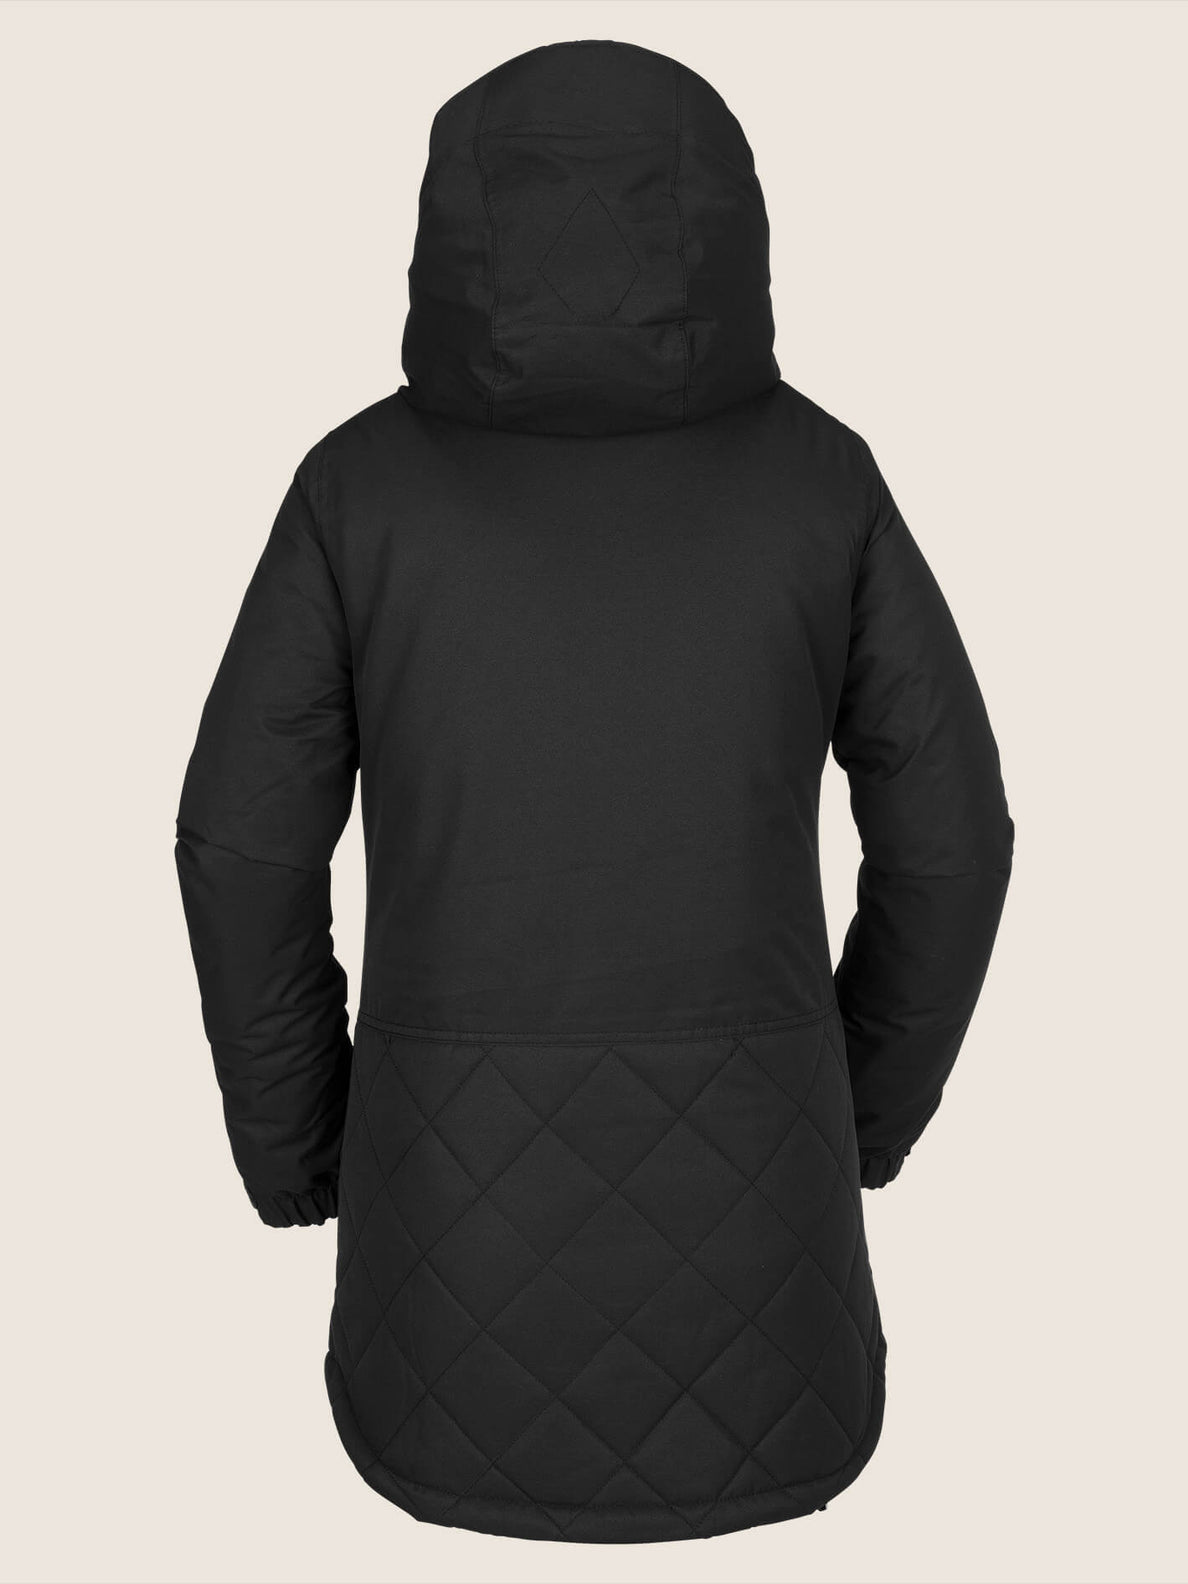 Winrose Insulated Jacket In Black, Back View